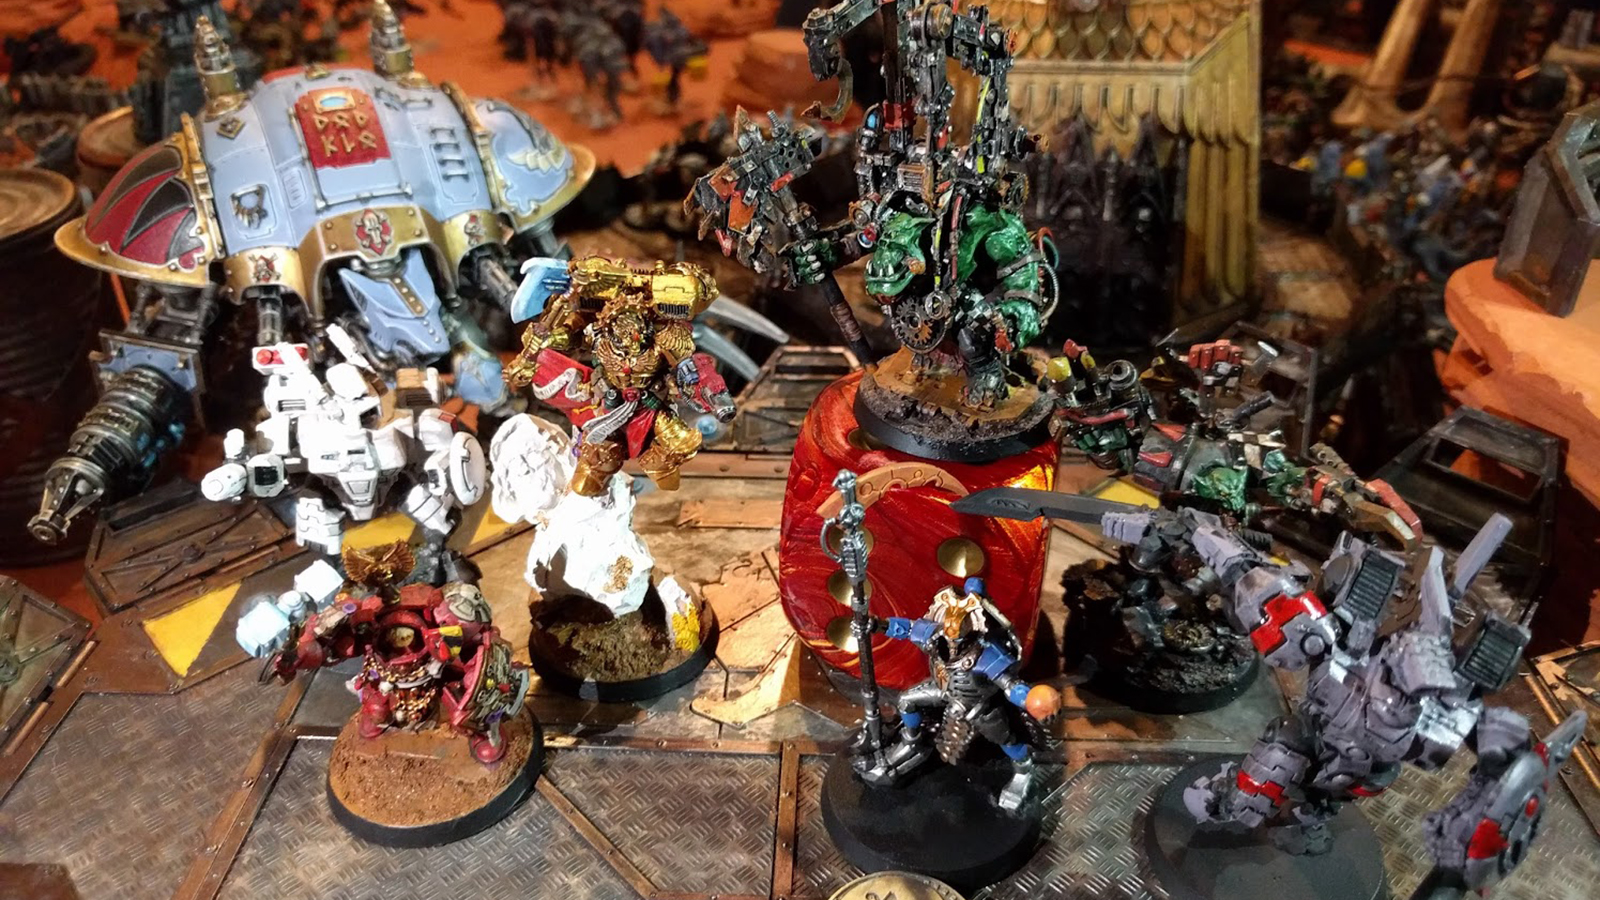 Team Waaagh with the Victory!